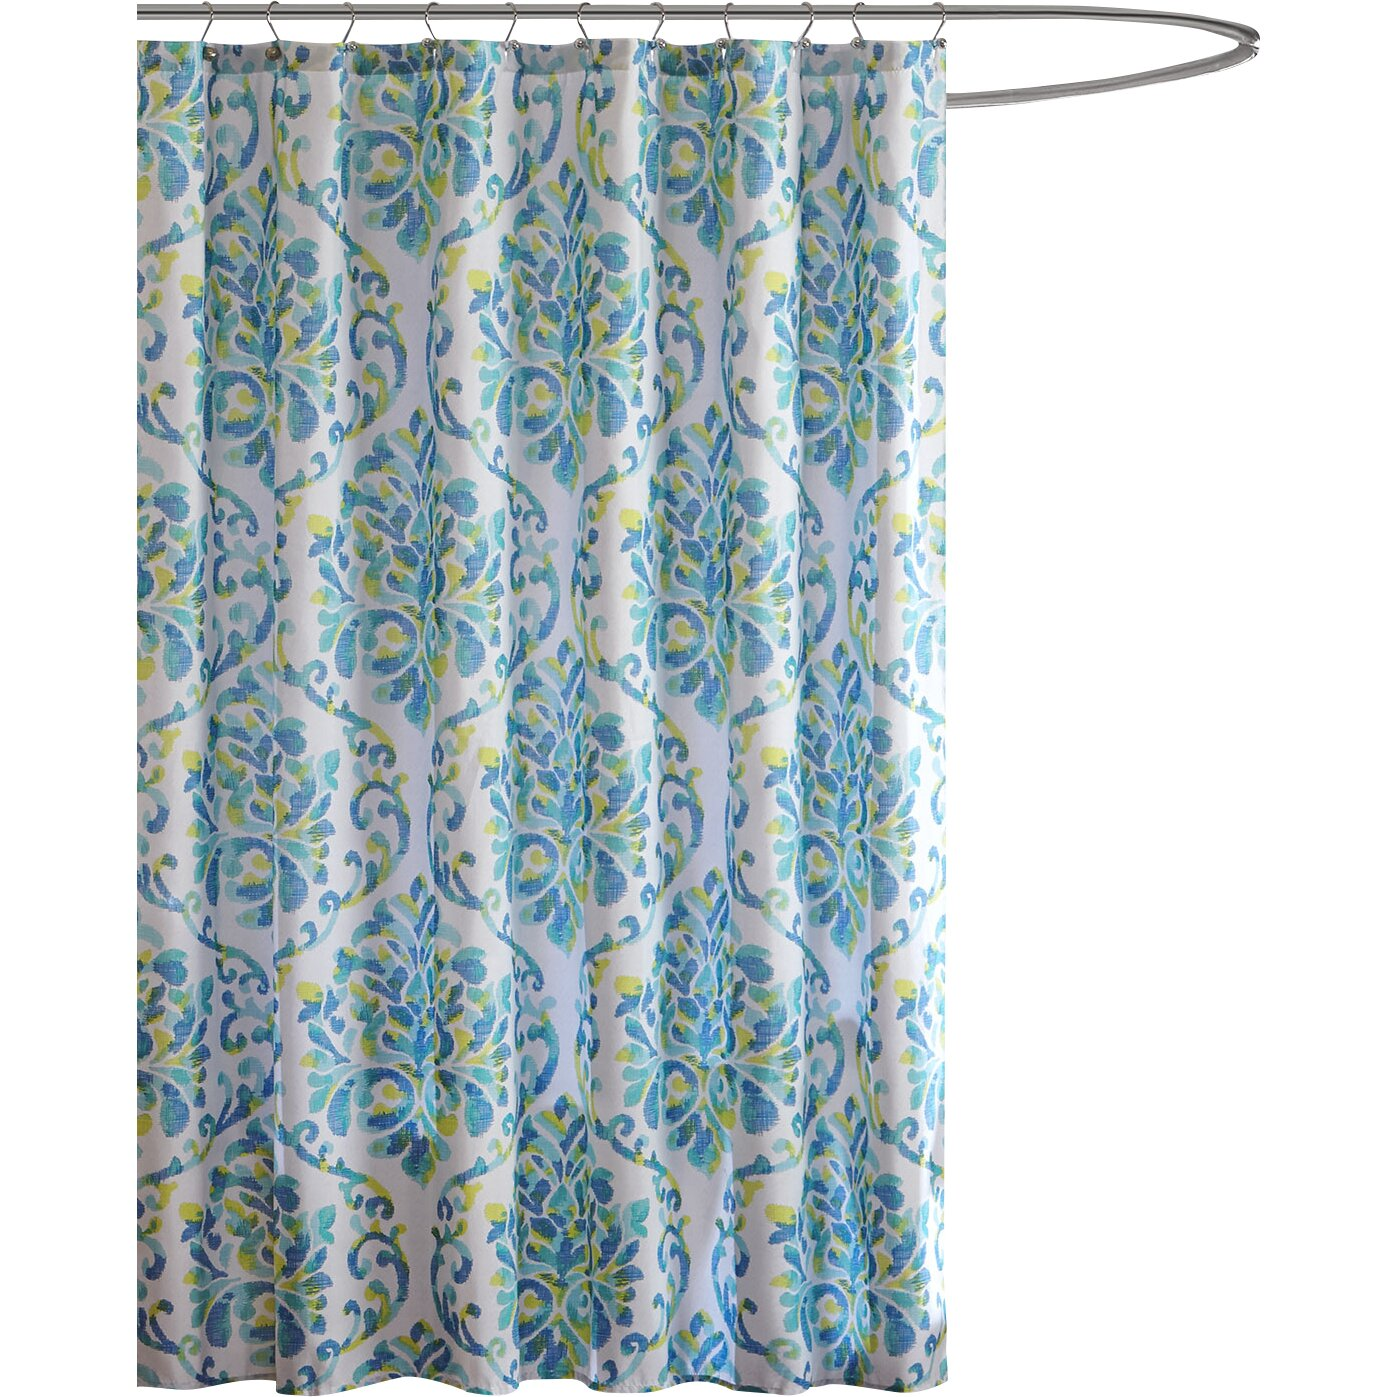 Intelligent Design Ari Shower Curtain Reviews Wayfair